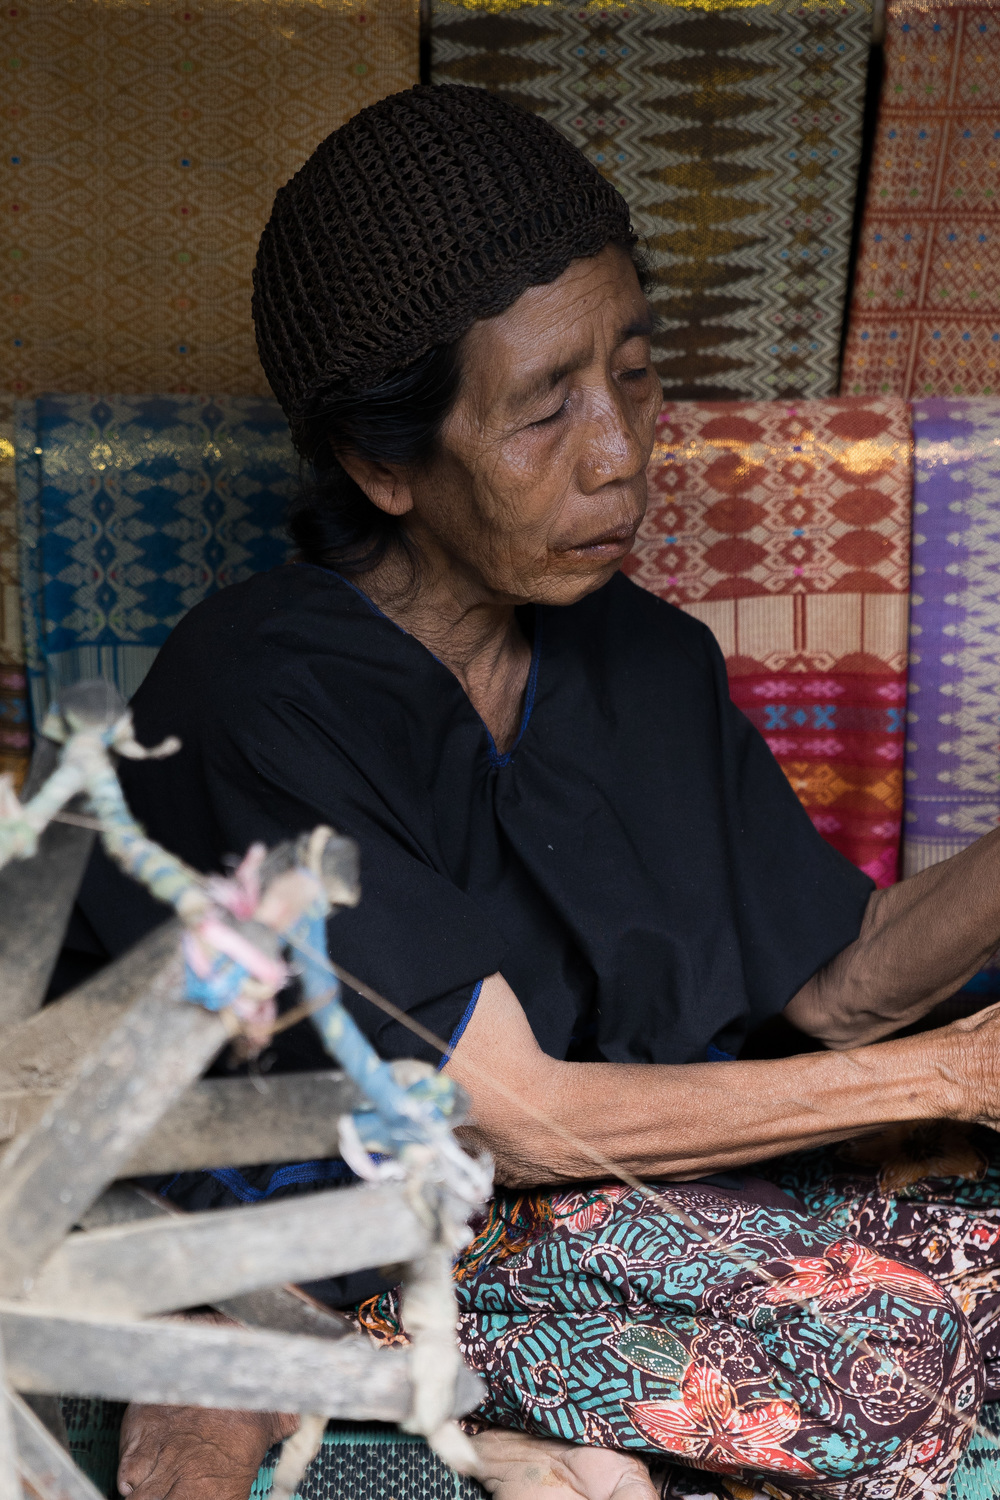 One of the villagers showing us how to weave ikat cloth.